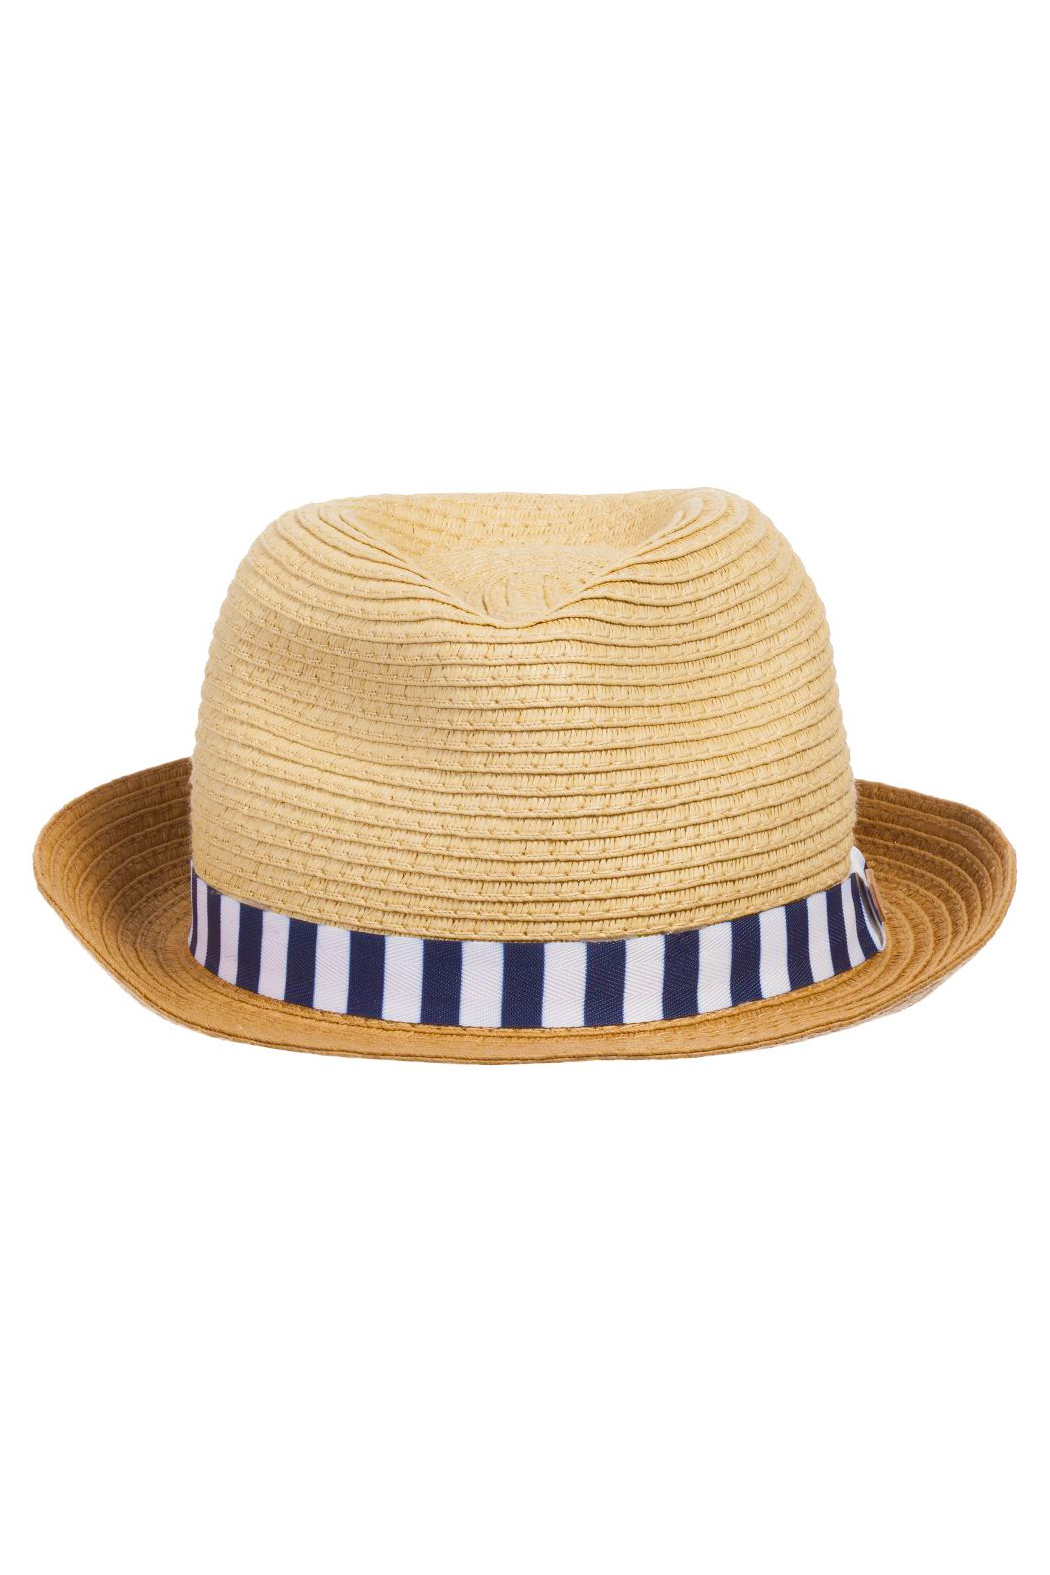 Mayoral Straw Fedora Hat - Side Cropped Image